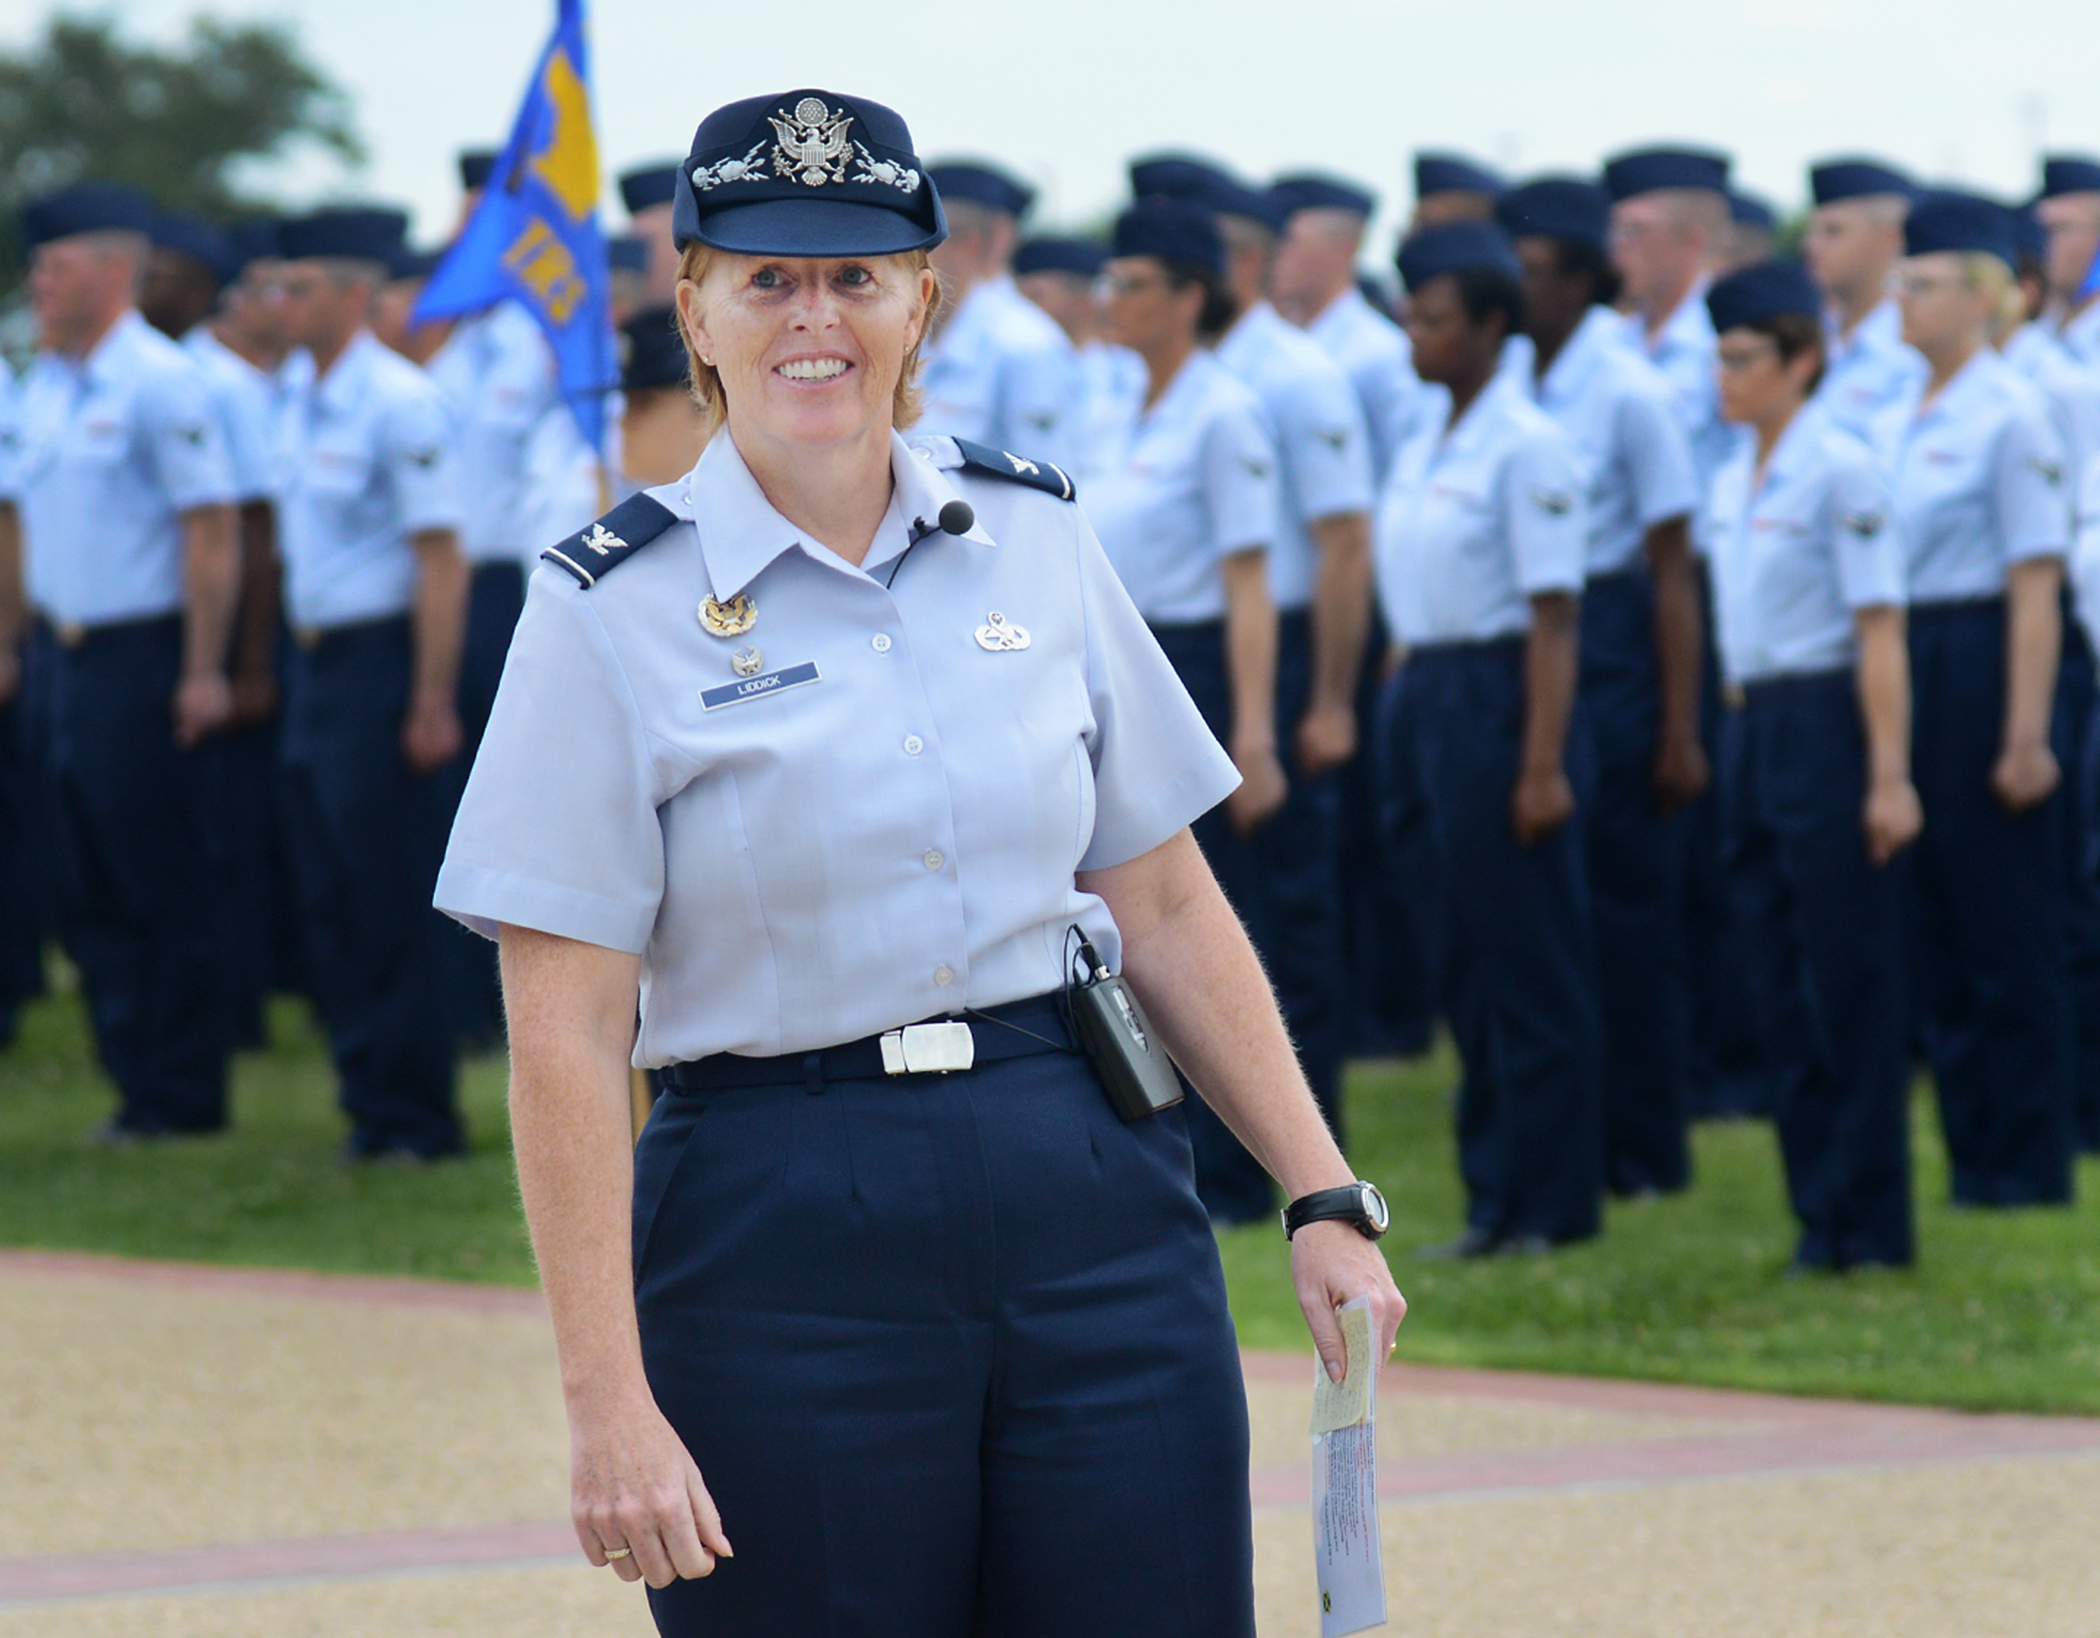 BMT commander retires, reflects on experience > Air